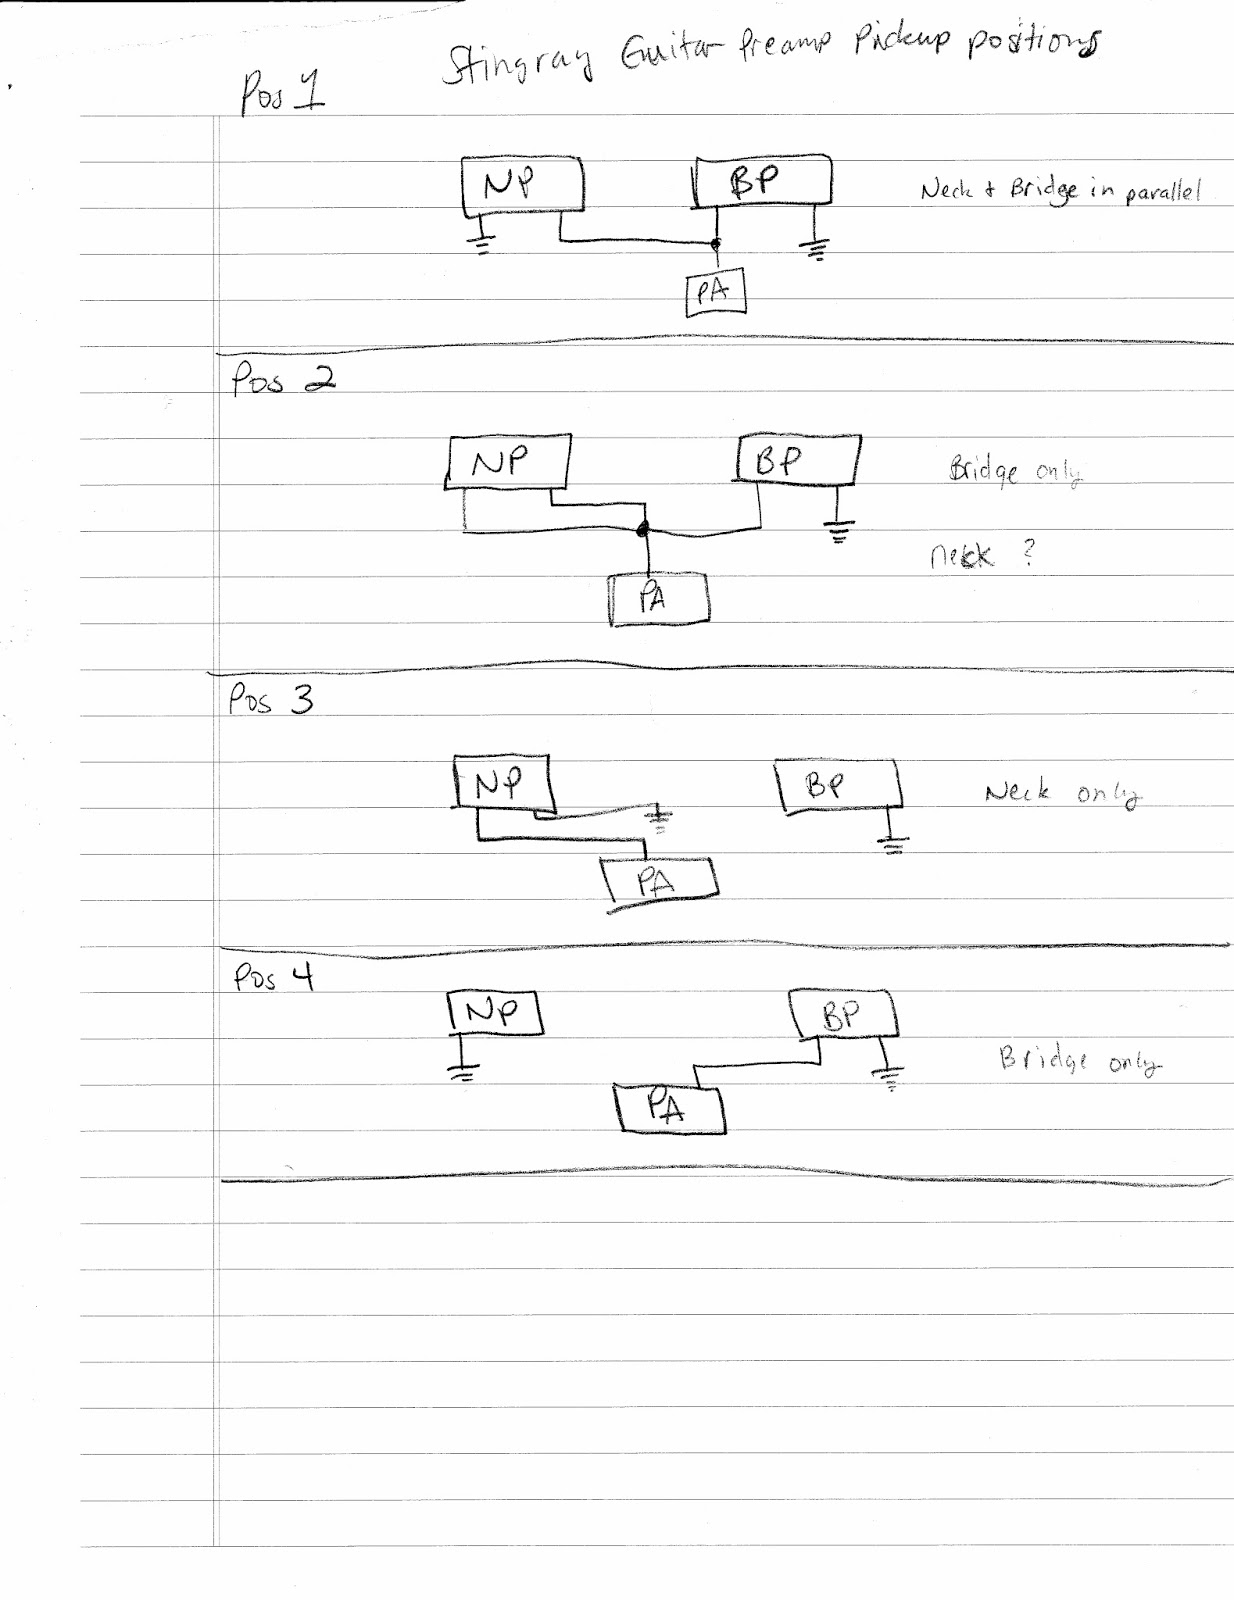 musicman stingray wiring diagram   32 wiring diagram